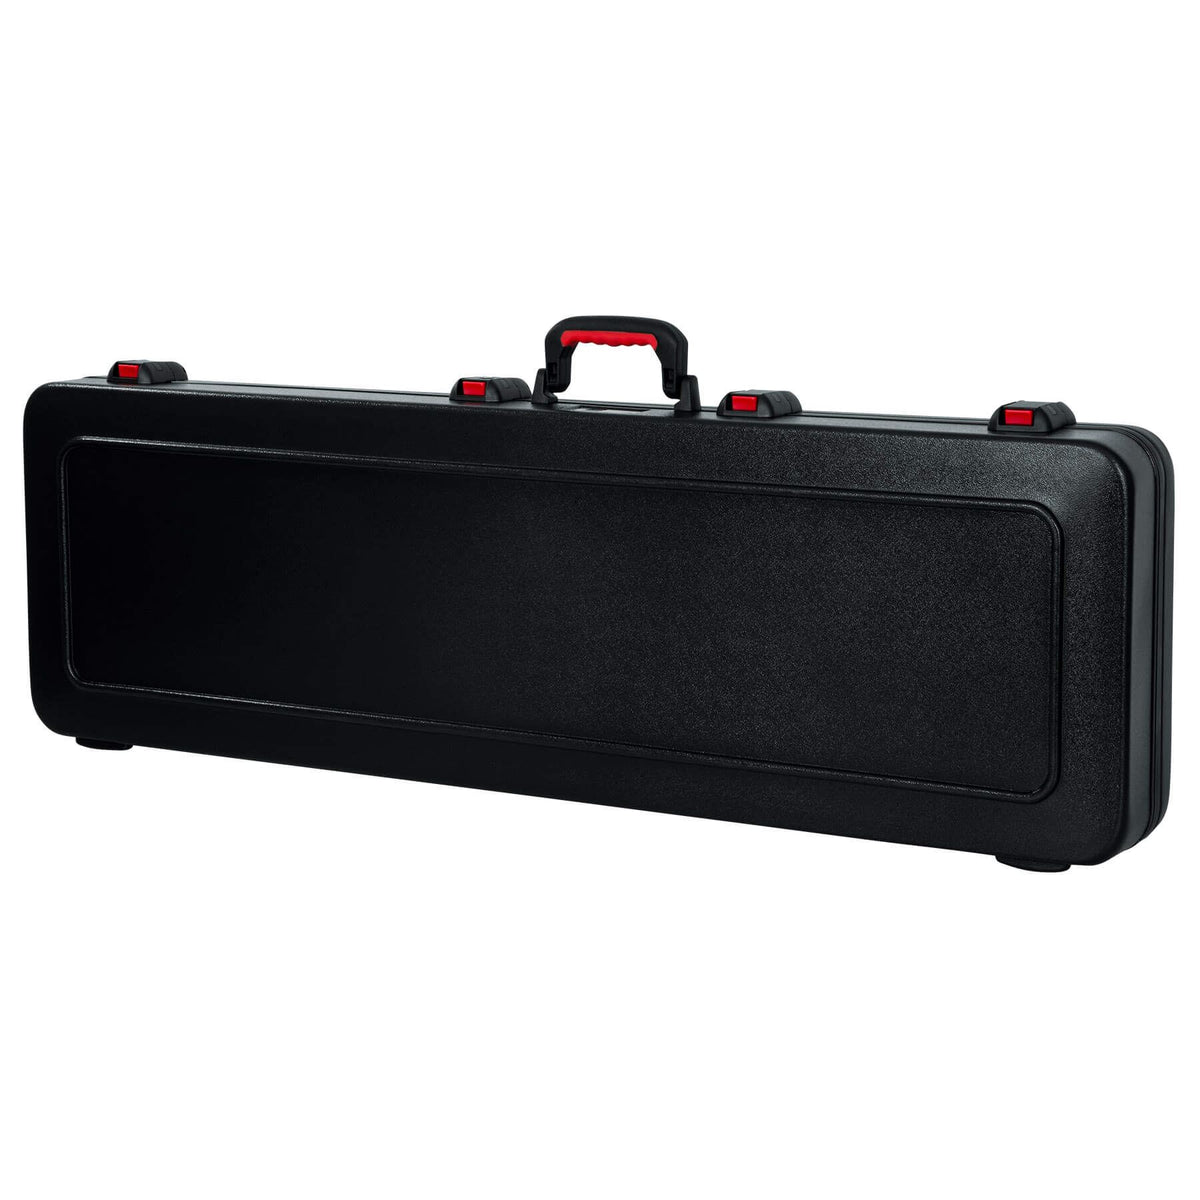 Gator ATA Bass Guitar Case fits Warwick Corvette Basic 6-String Active or Passive